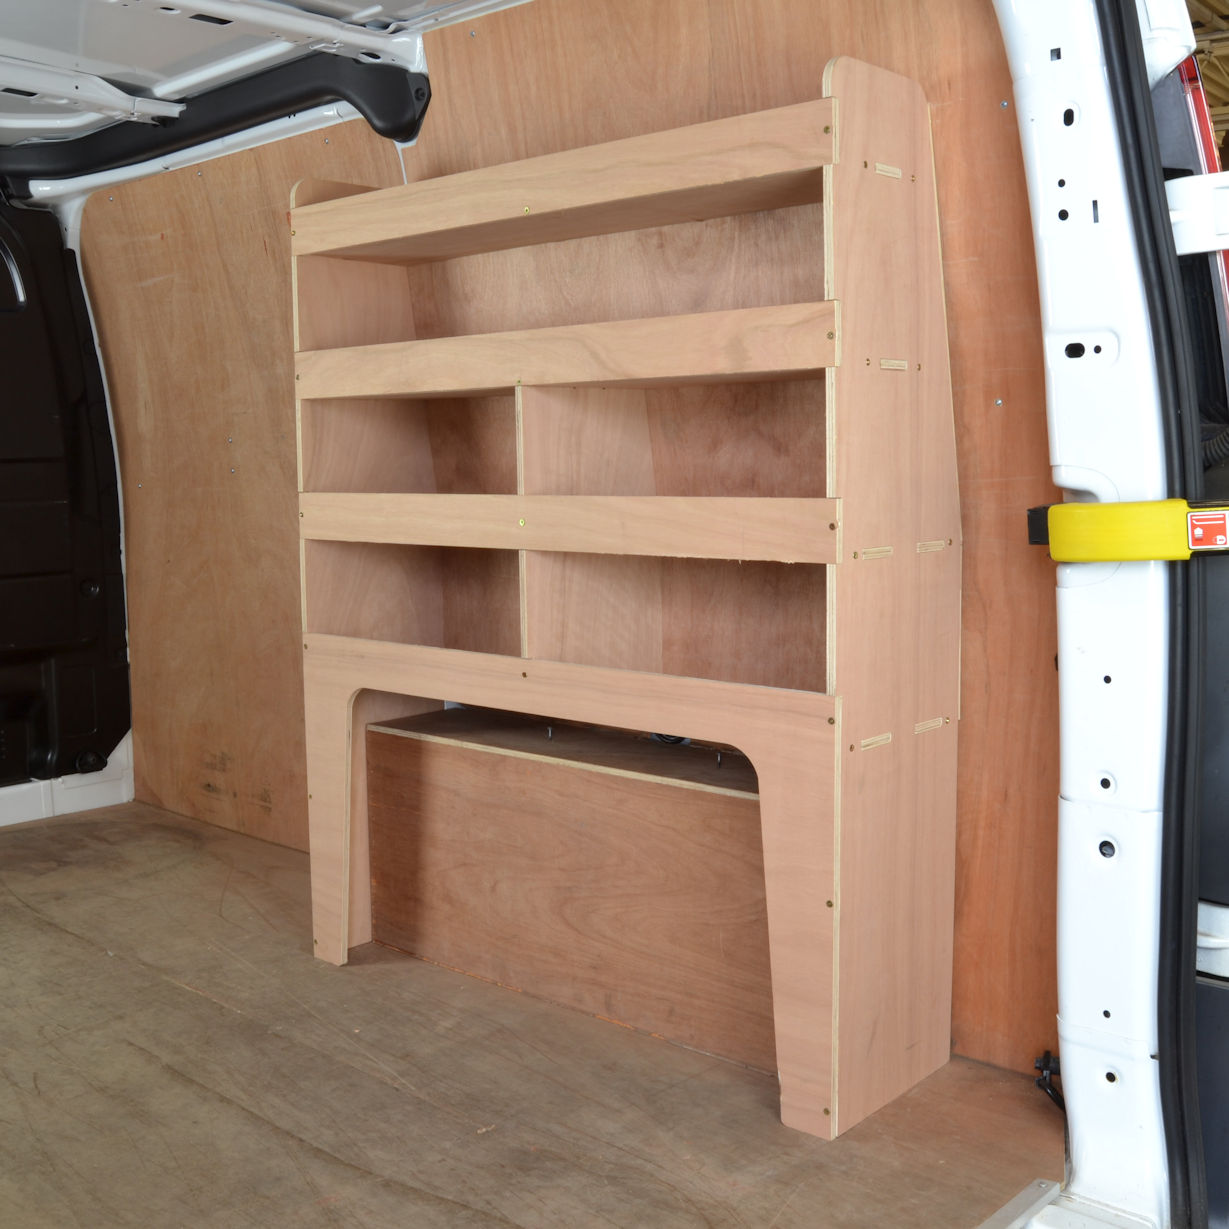 Ford Transit Roof Rack >> Transit Custom Plywood van racking / Shelving unit - WR53